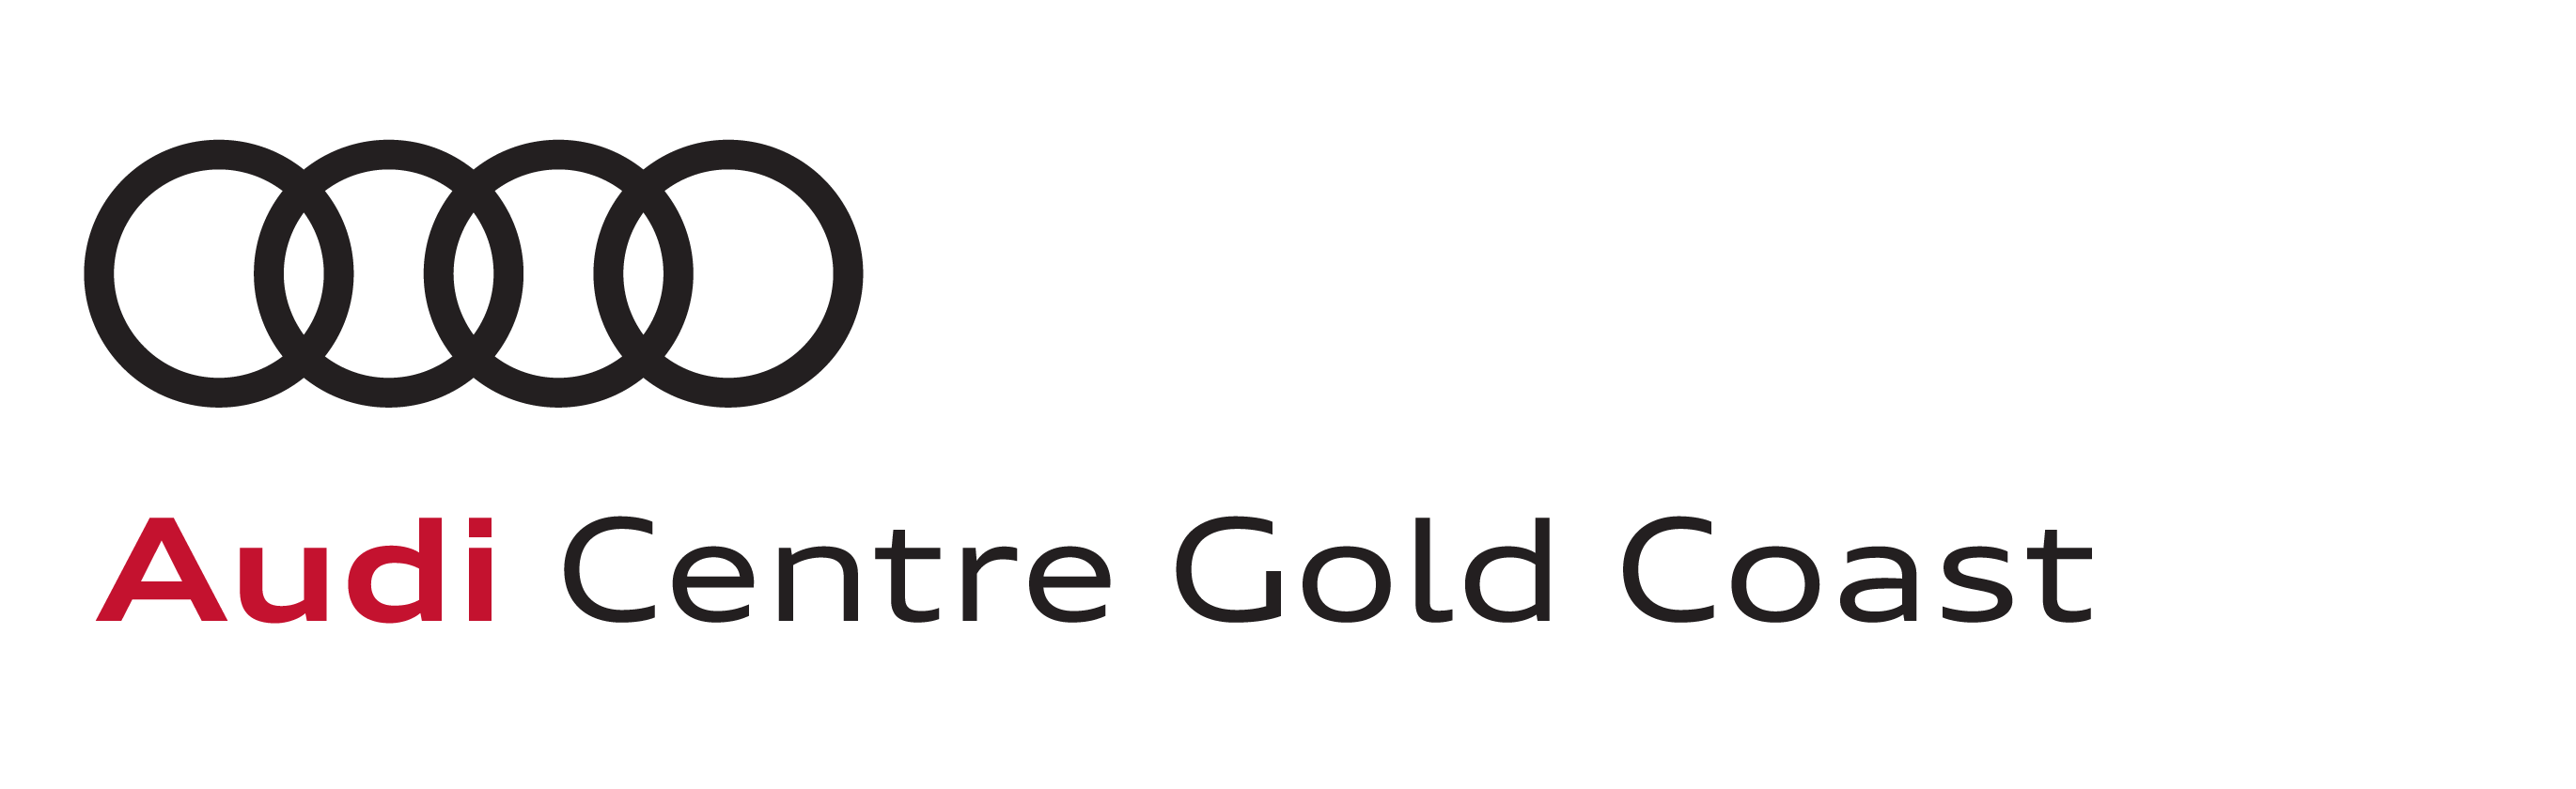 AUDI Centre Gold Coast Logo